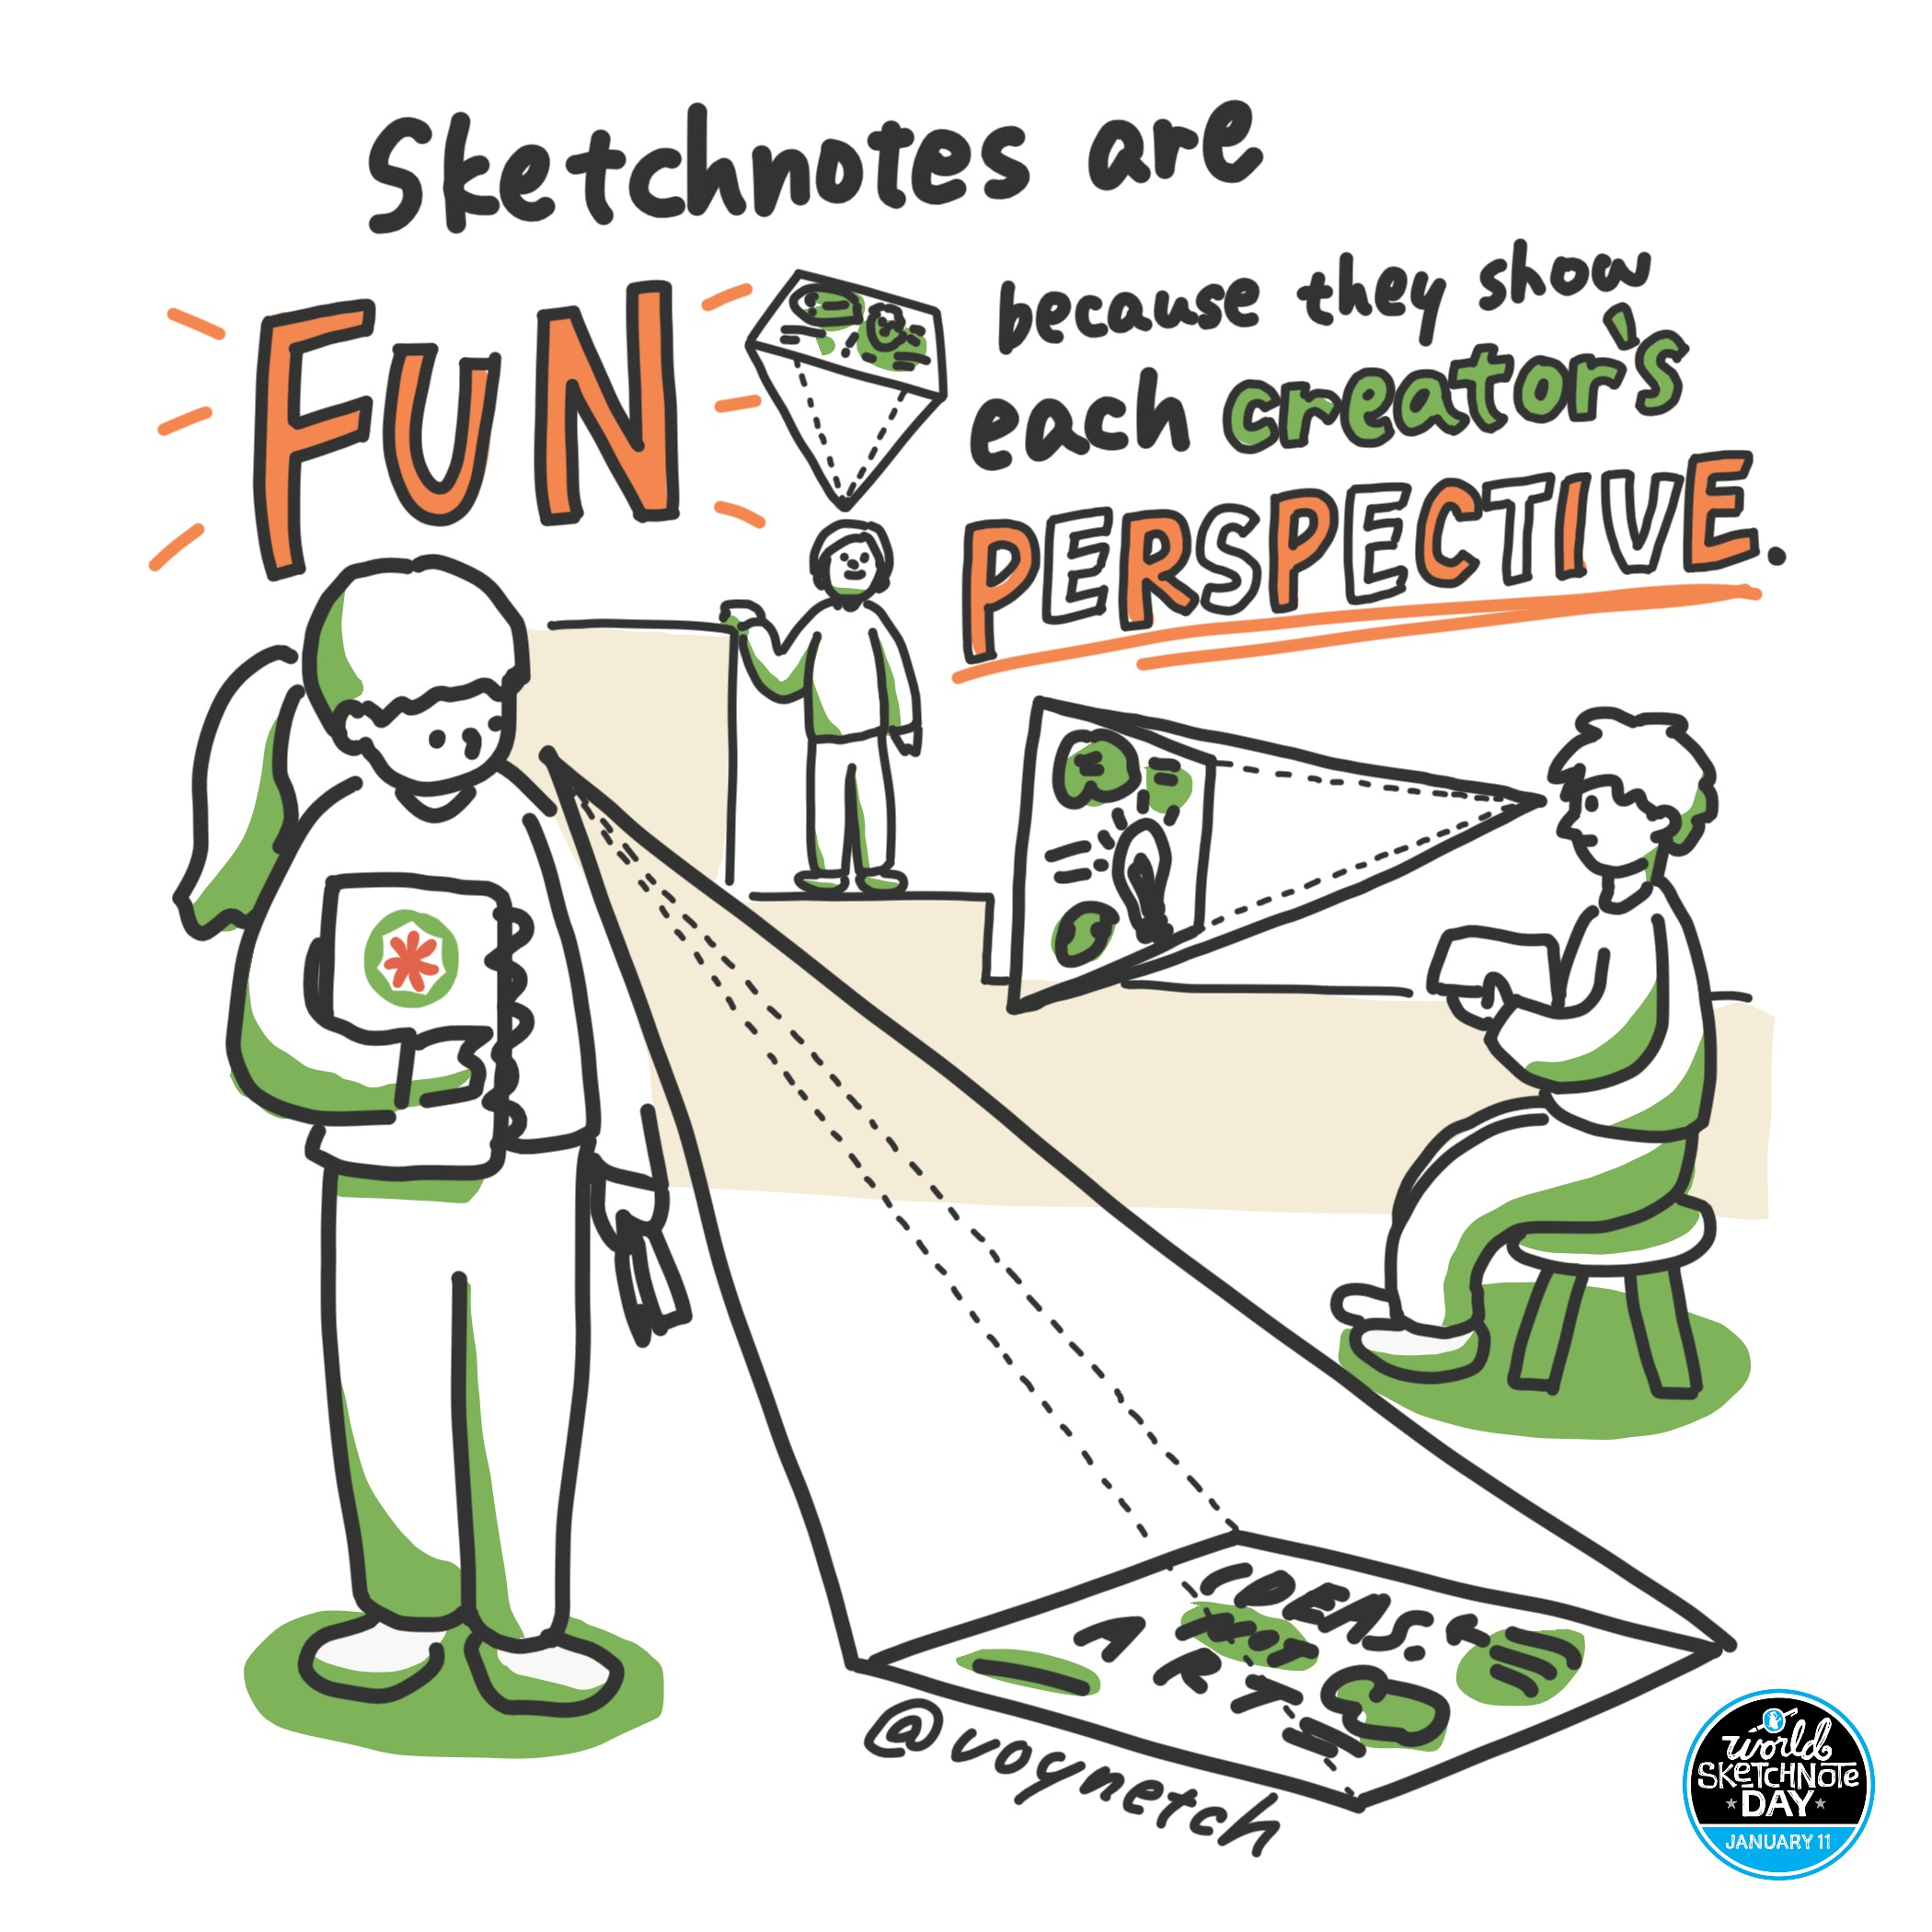 Pass The Sketchnote 2020 Image